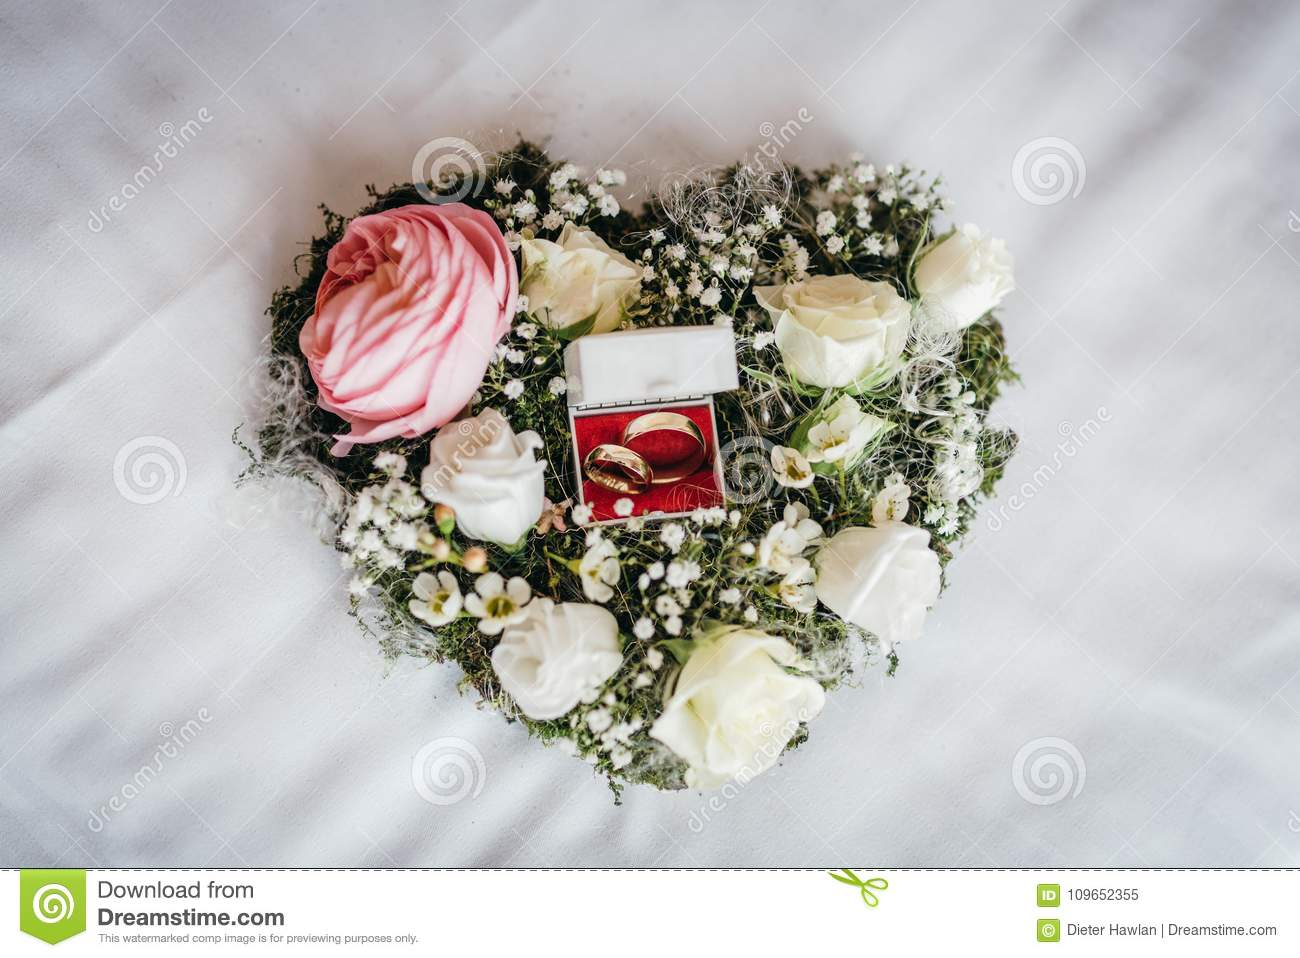 Wedding rings in a floral bouquet stock image image of anniversary wedding rings in a floral bouquet izmirmasajfo